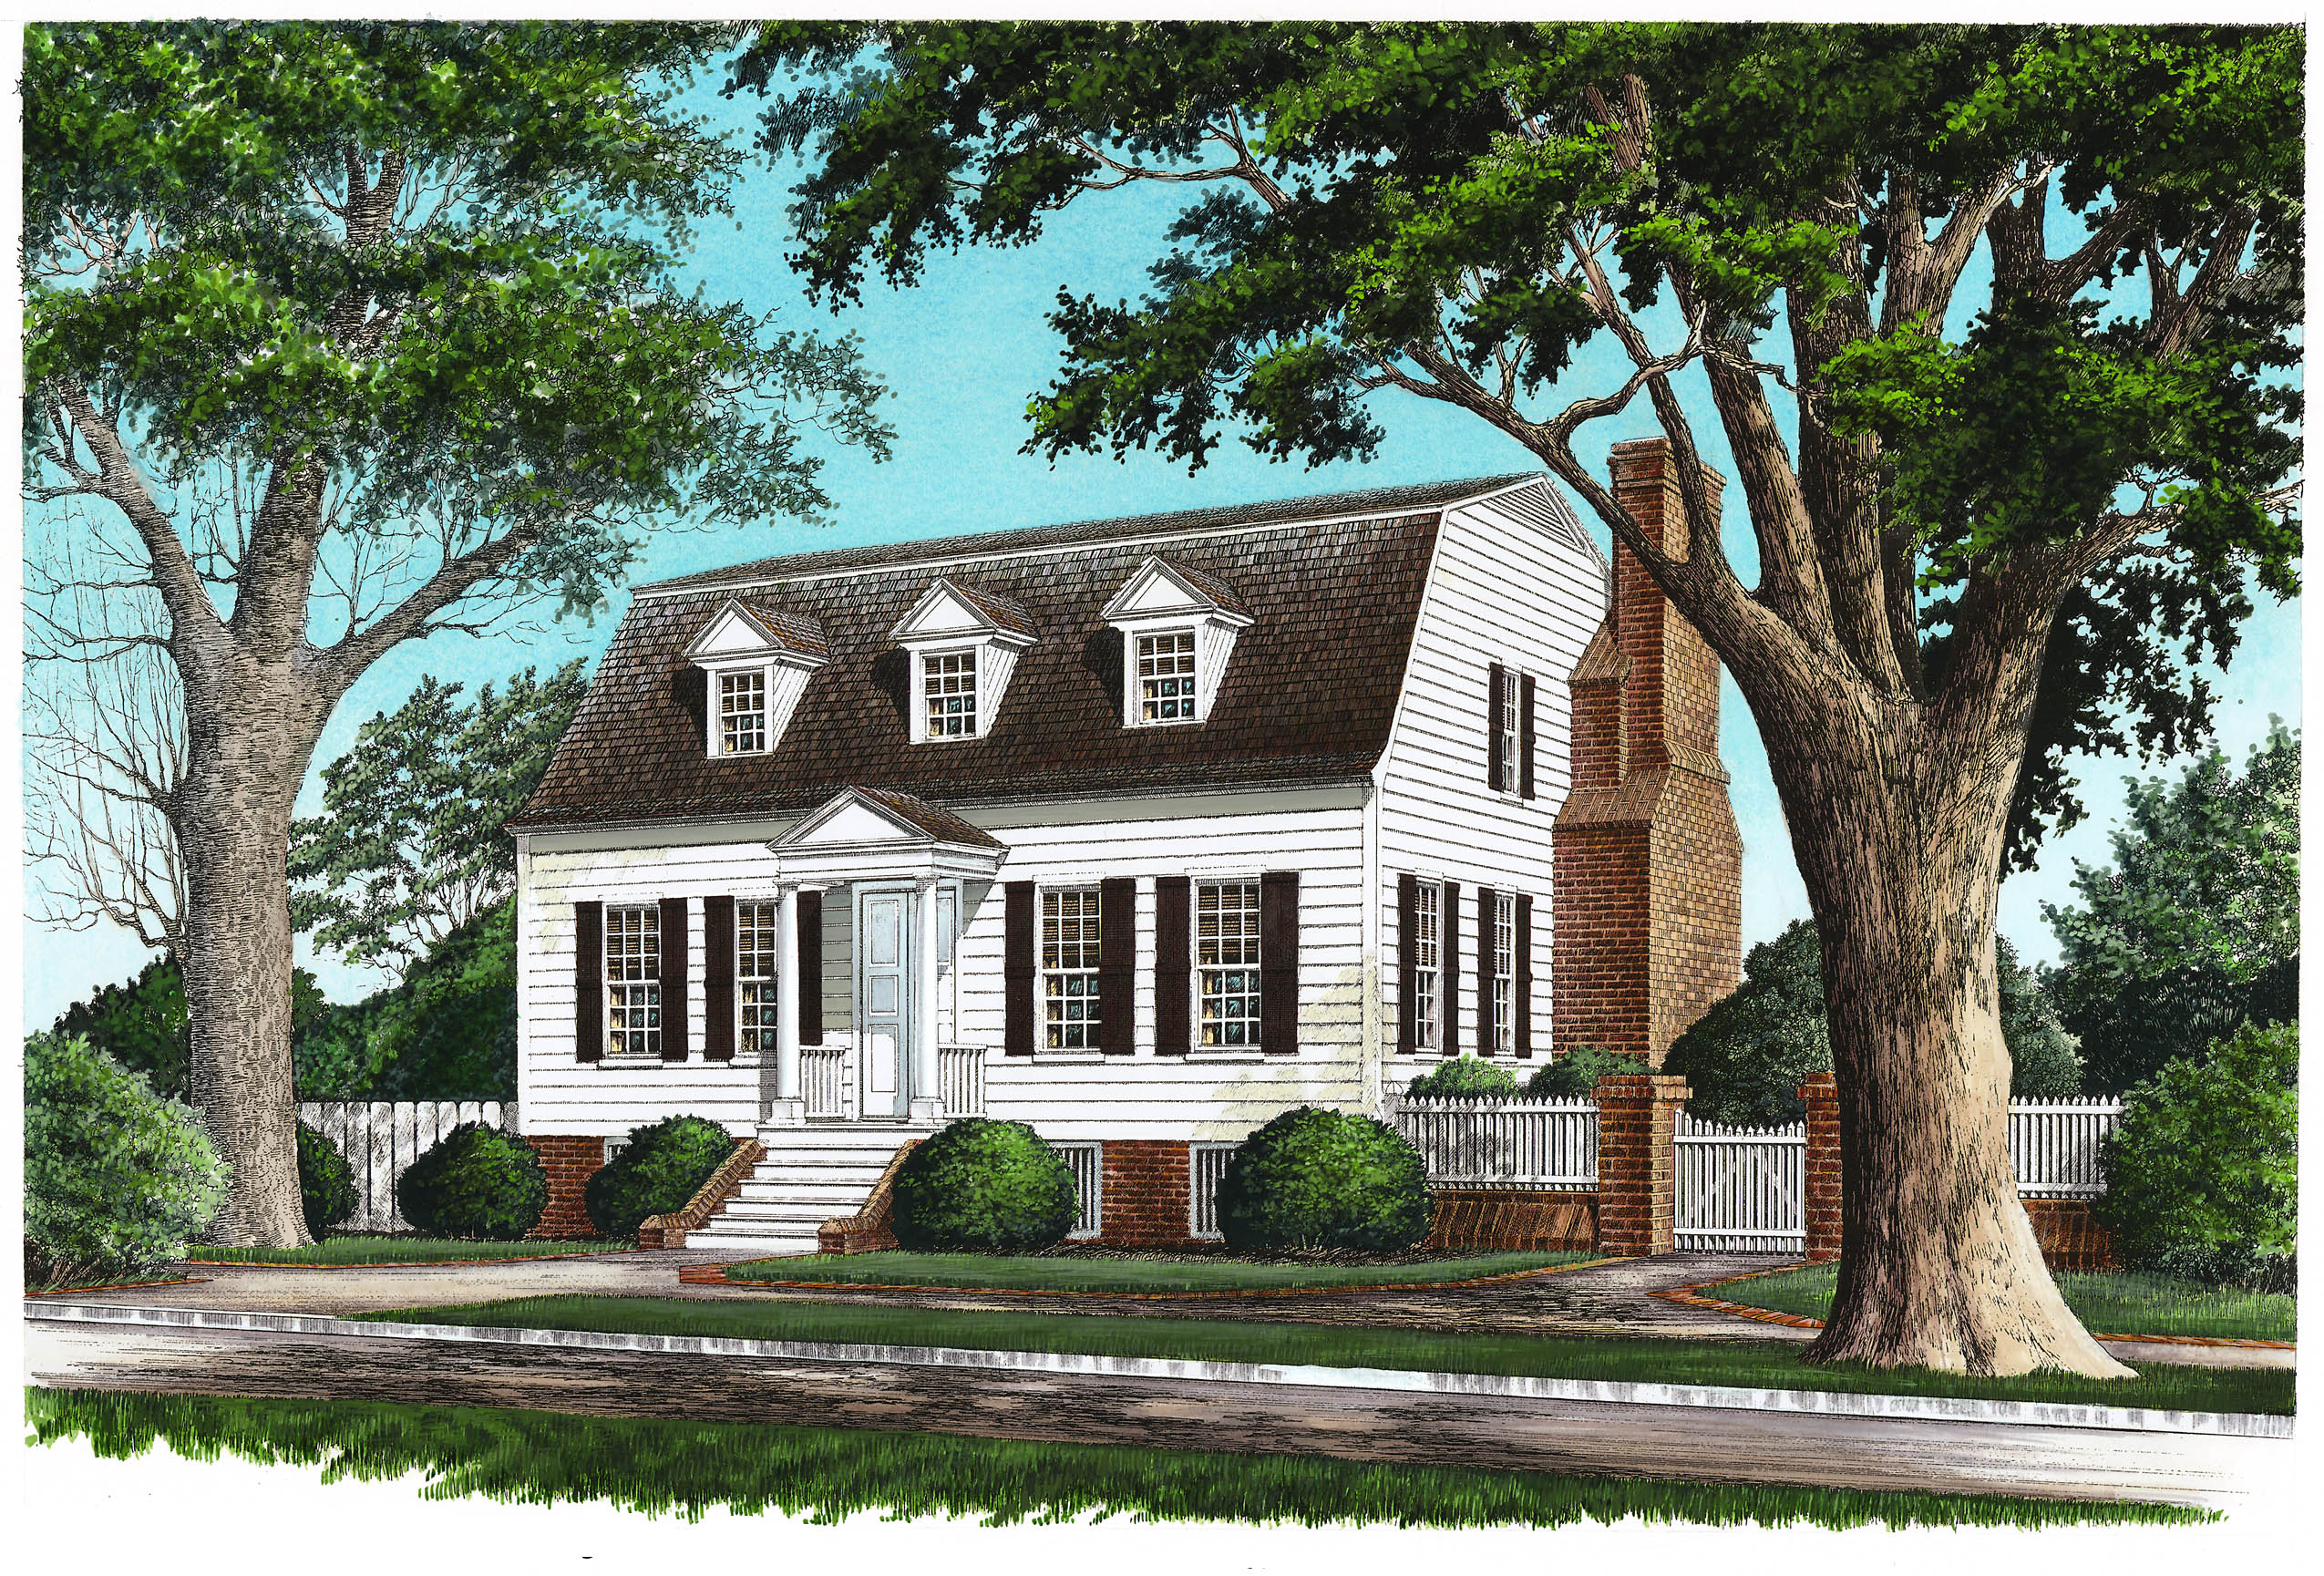 20 examples of homes with gambrel roofs photo examples gambrel roof shingles needed for a gambrel roof calculator